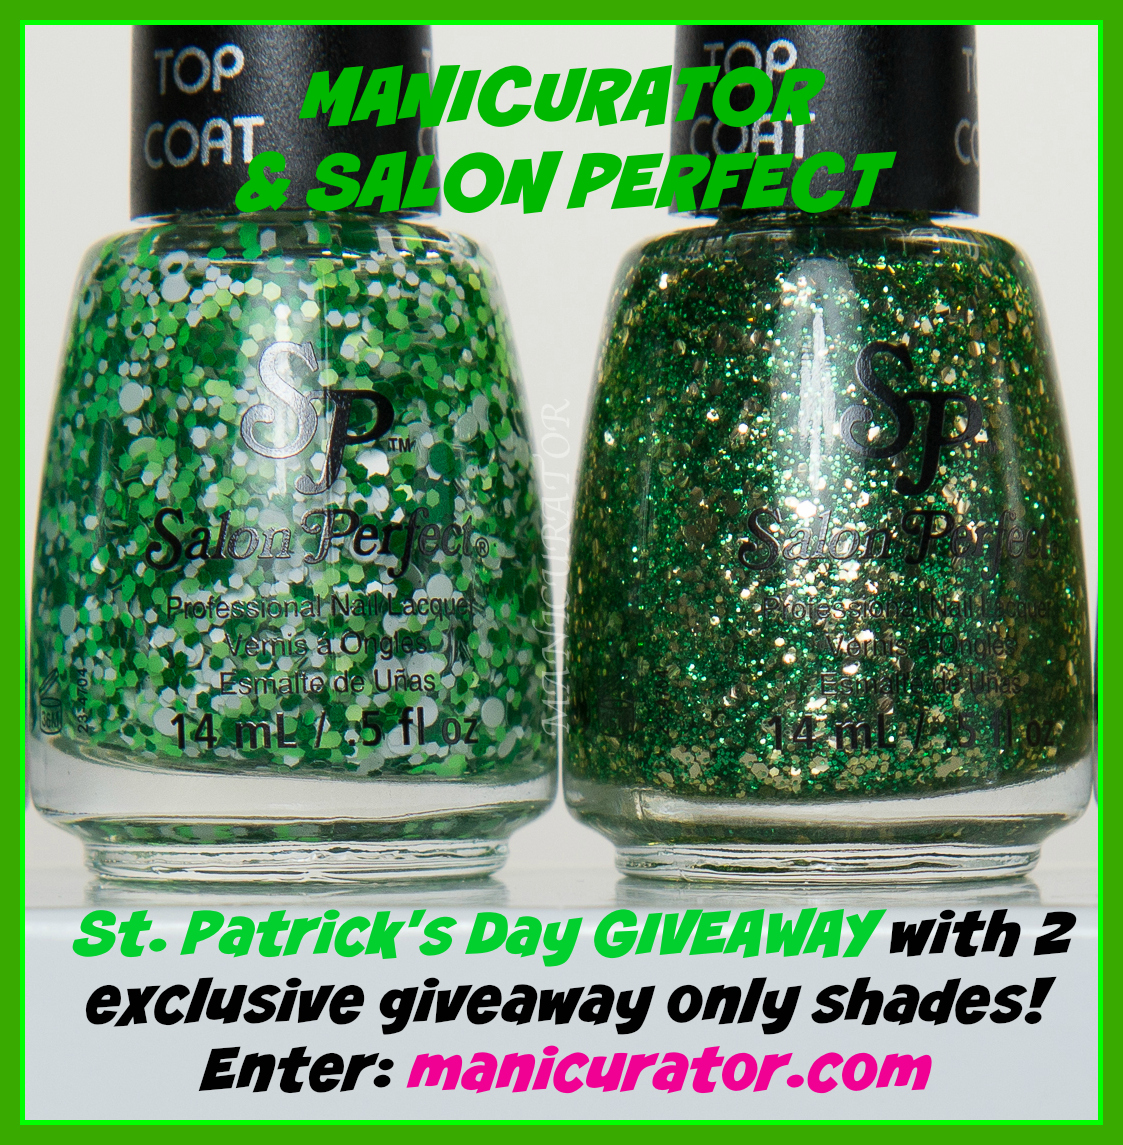 Salon-Perfect-St-Patrick's-Nail-Art-Giveaway